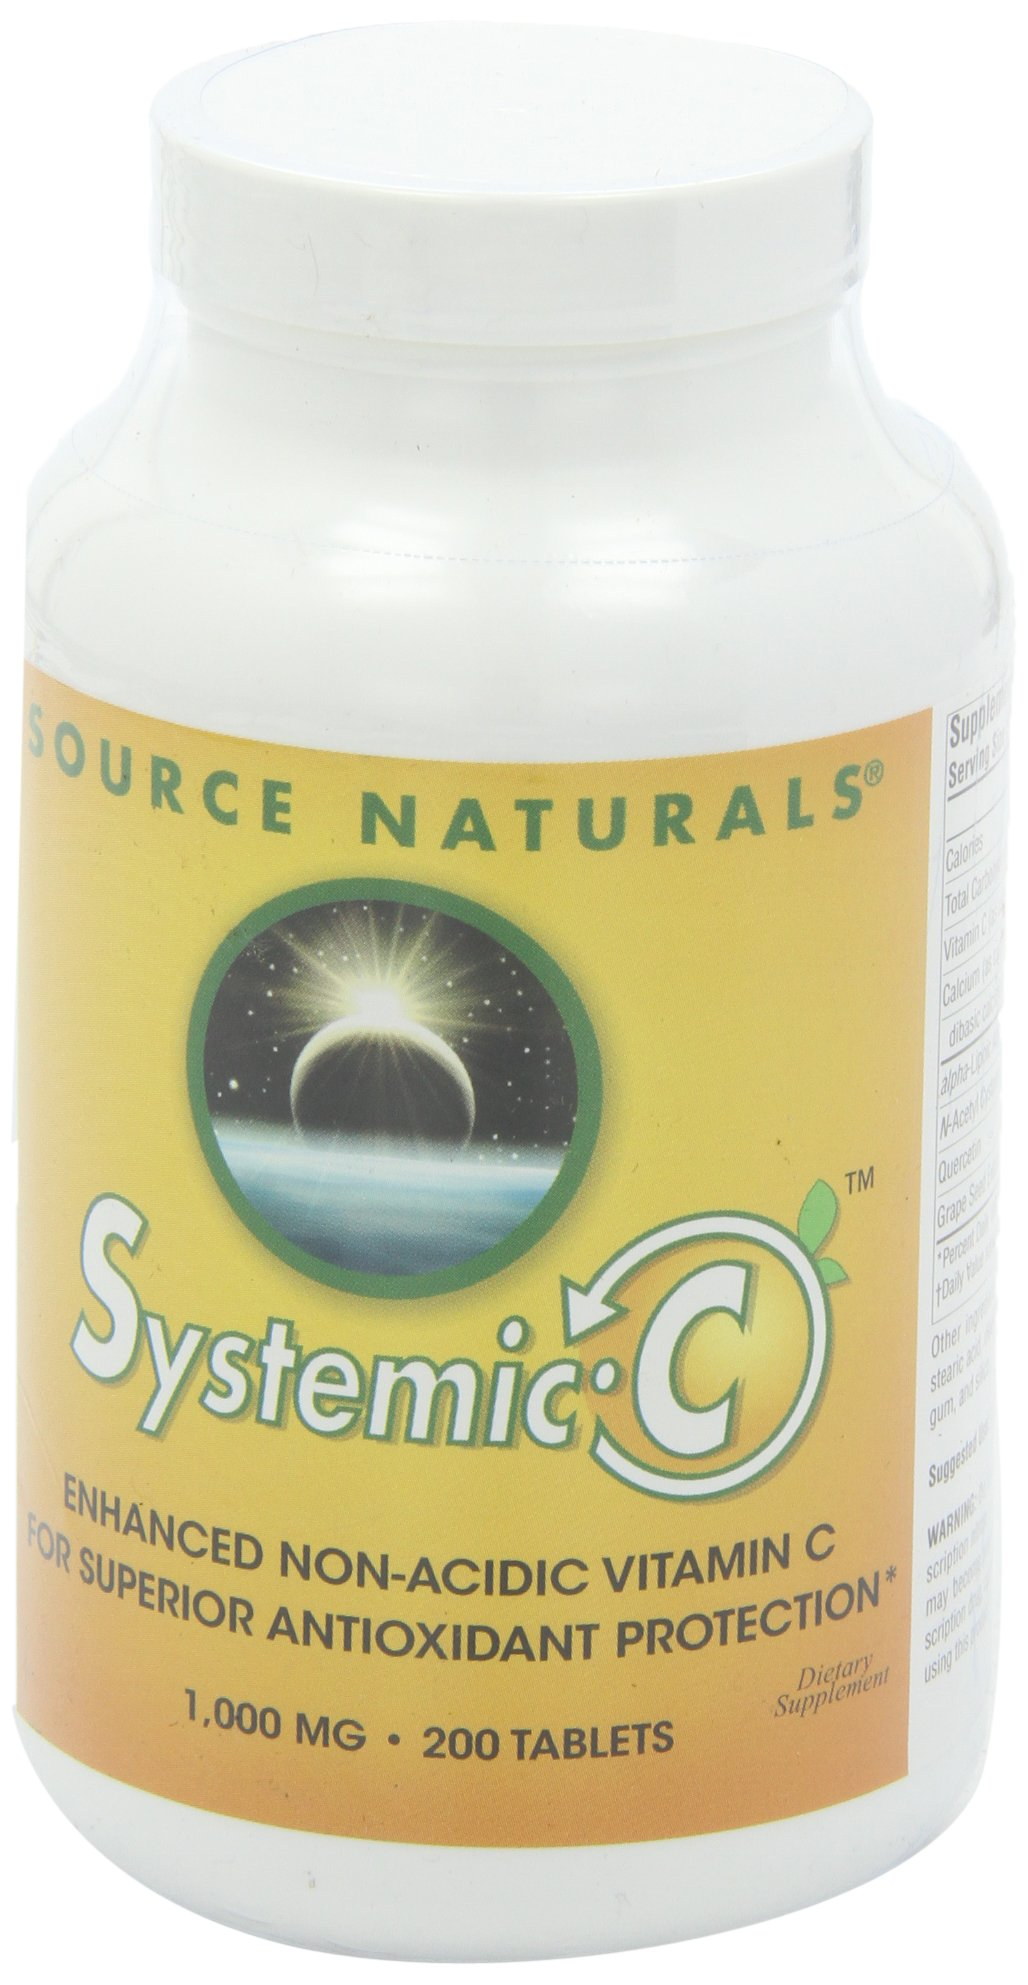 Source Naturals Systemic C 1000mg, Enhanced Non-Acidic Vitamin C for Superior Antioxidant Protection, 200 Tablets